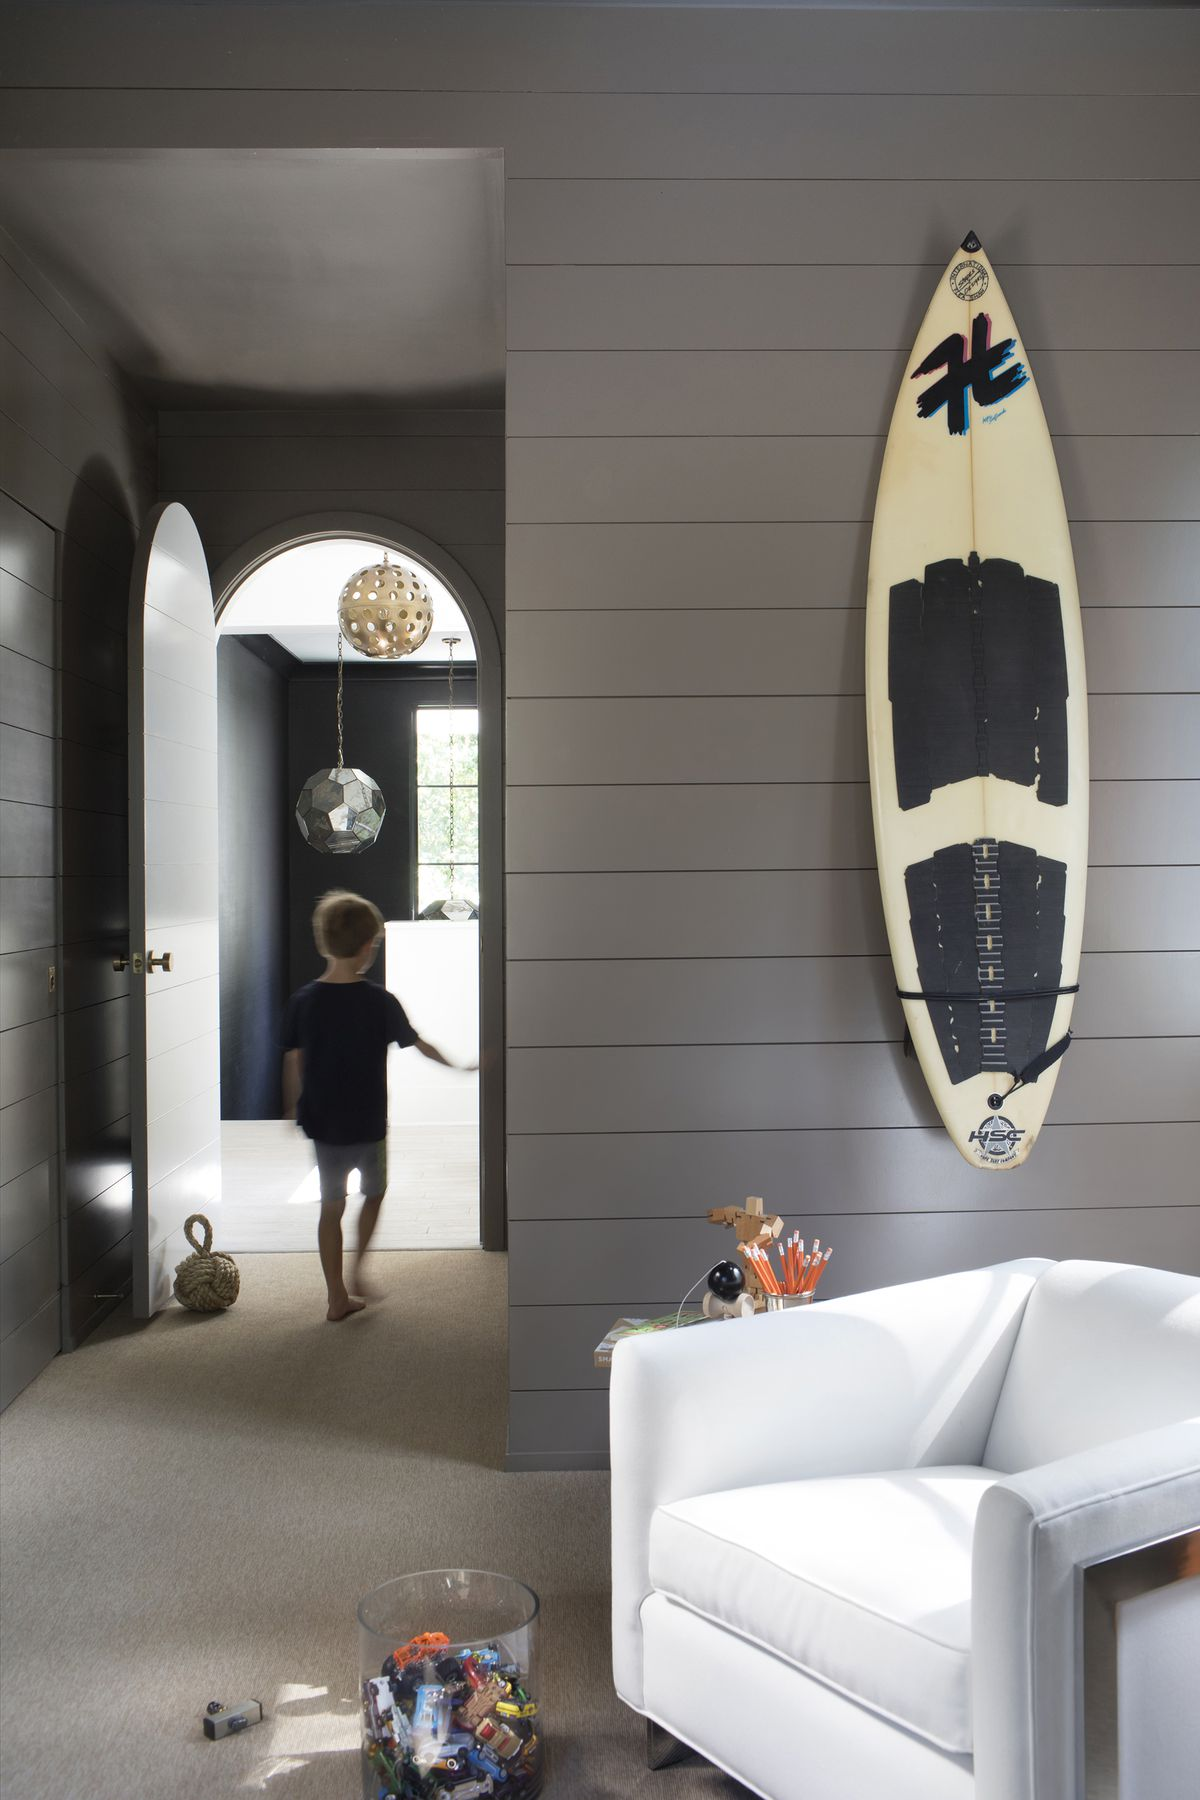 A surf board hangs on the wall of the son's bedroom.